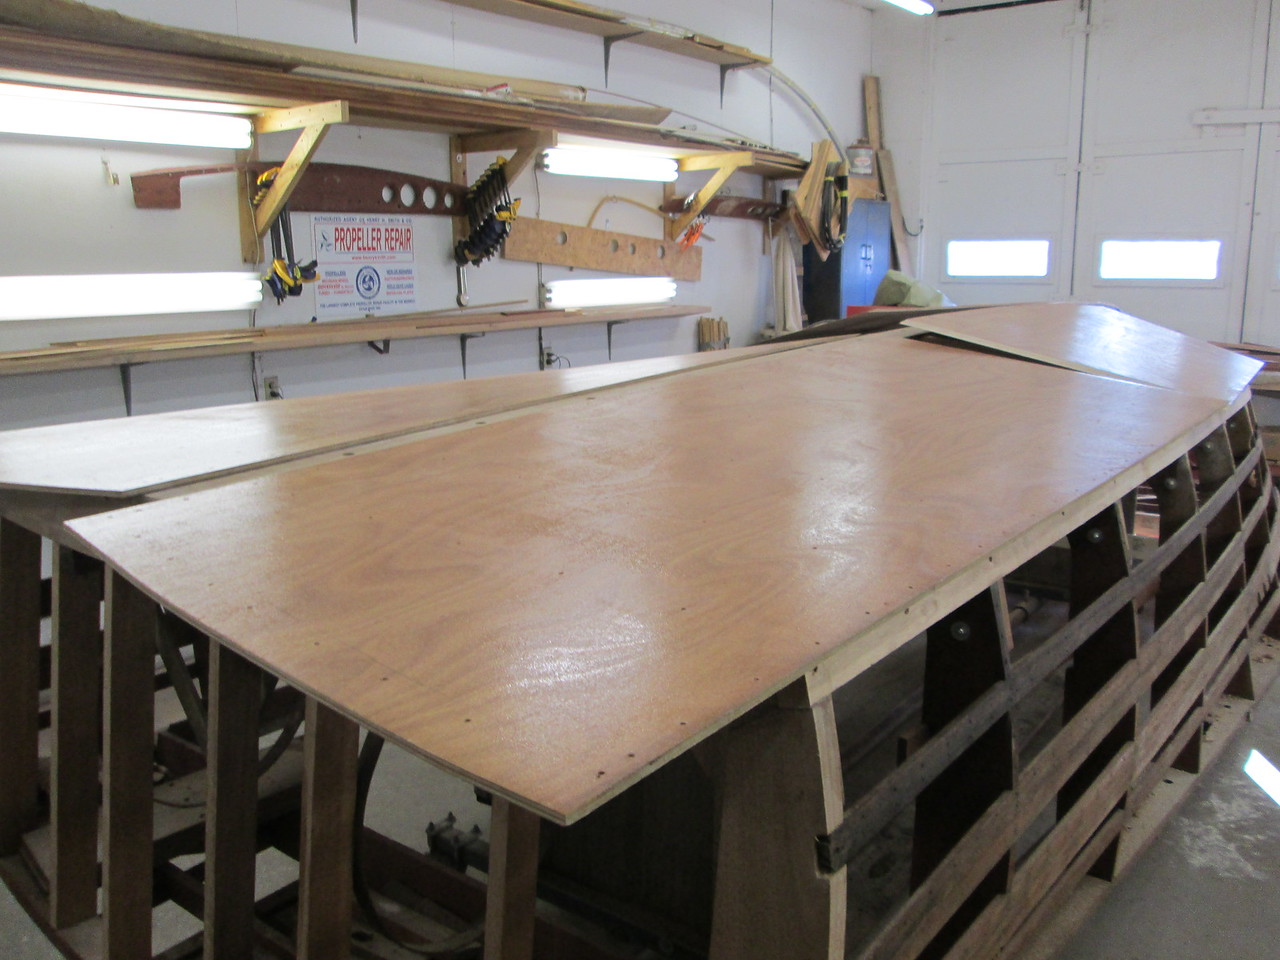 Bottom skin with epoxy applied to the inside surface.